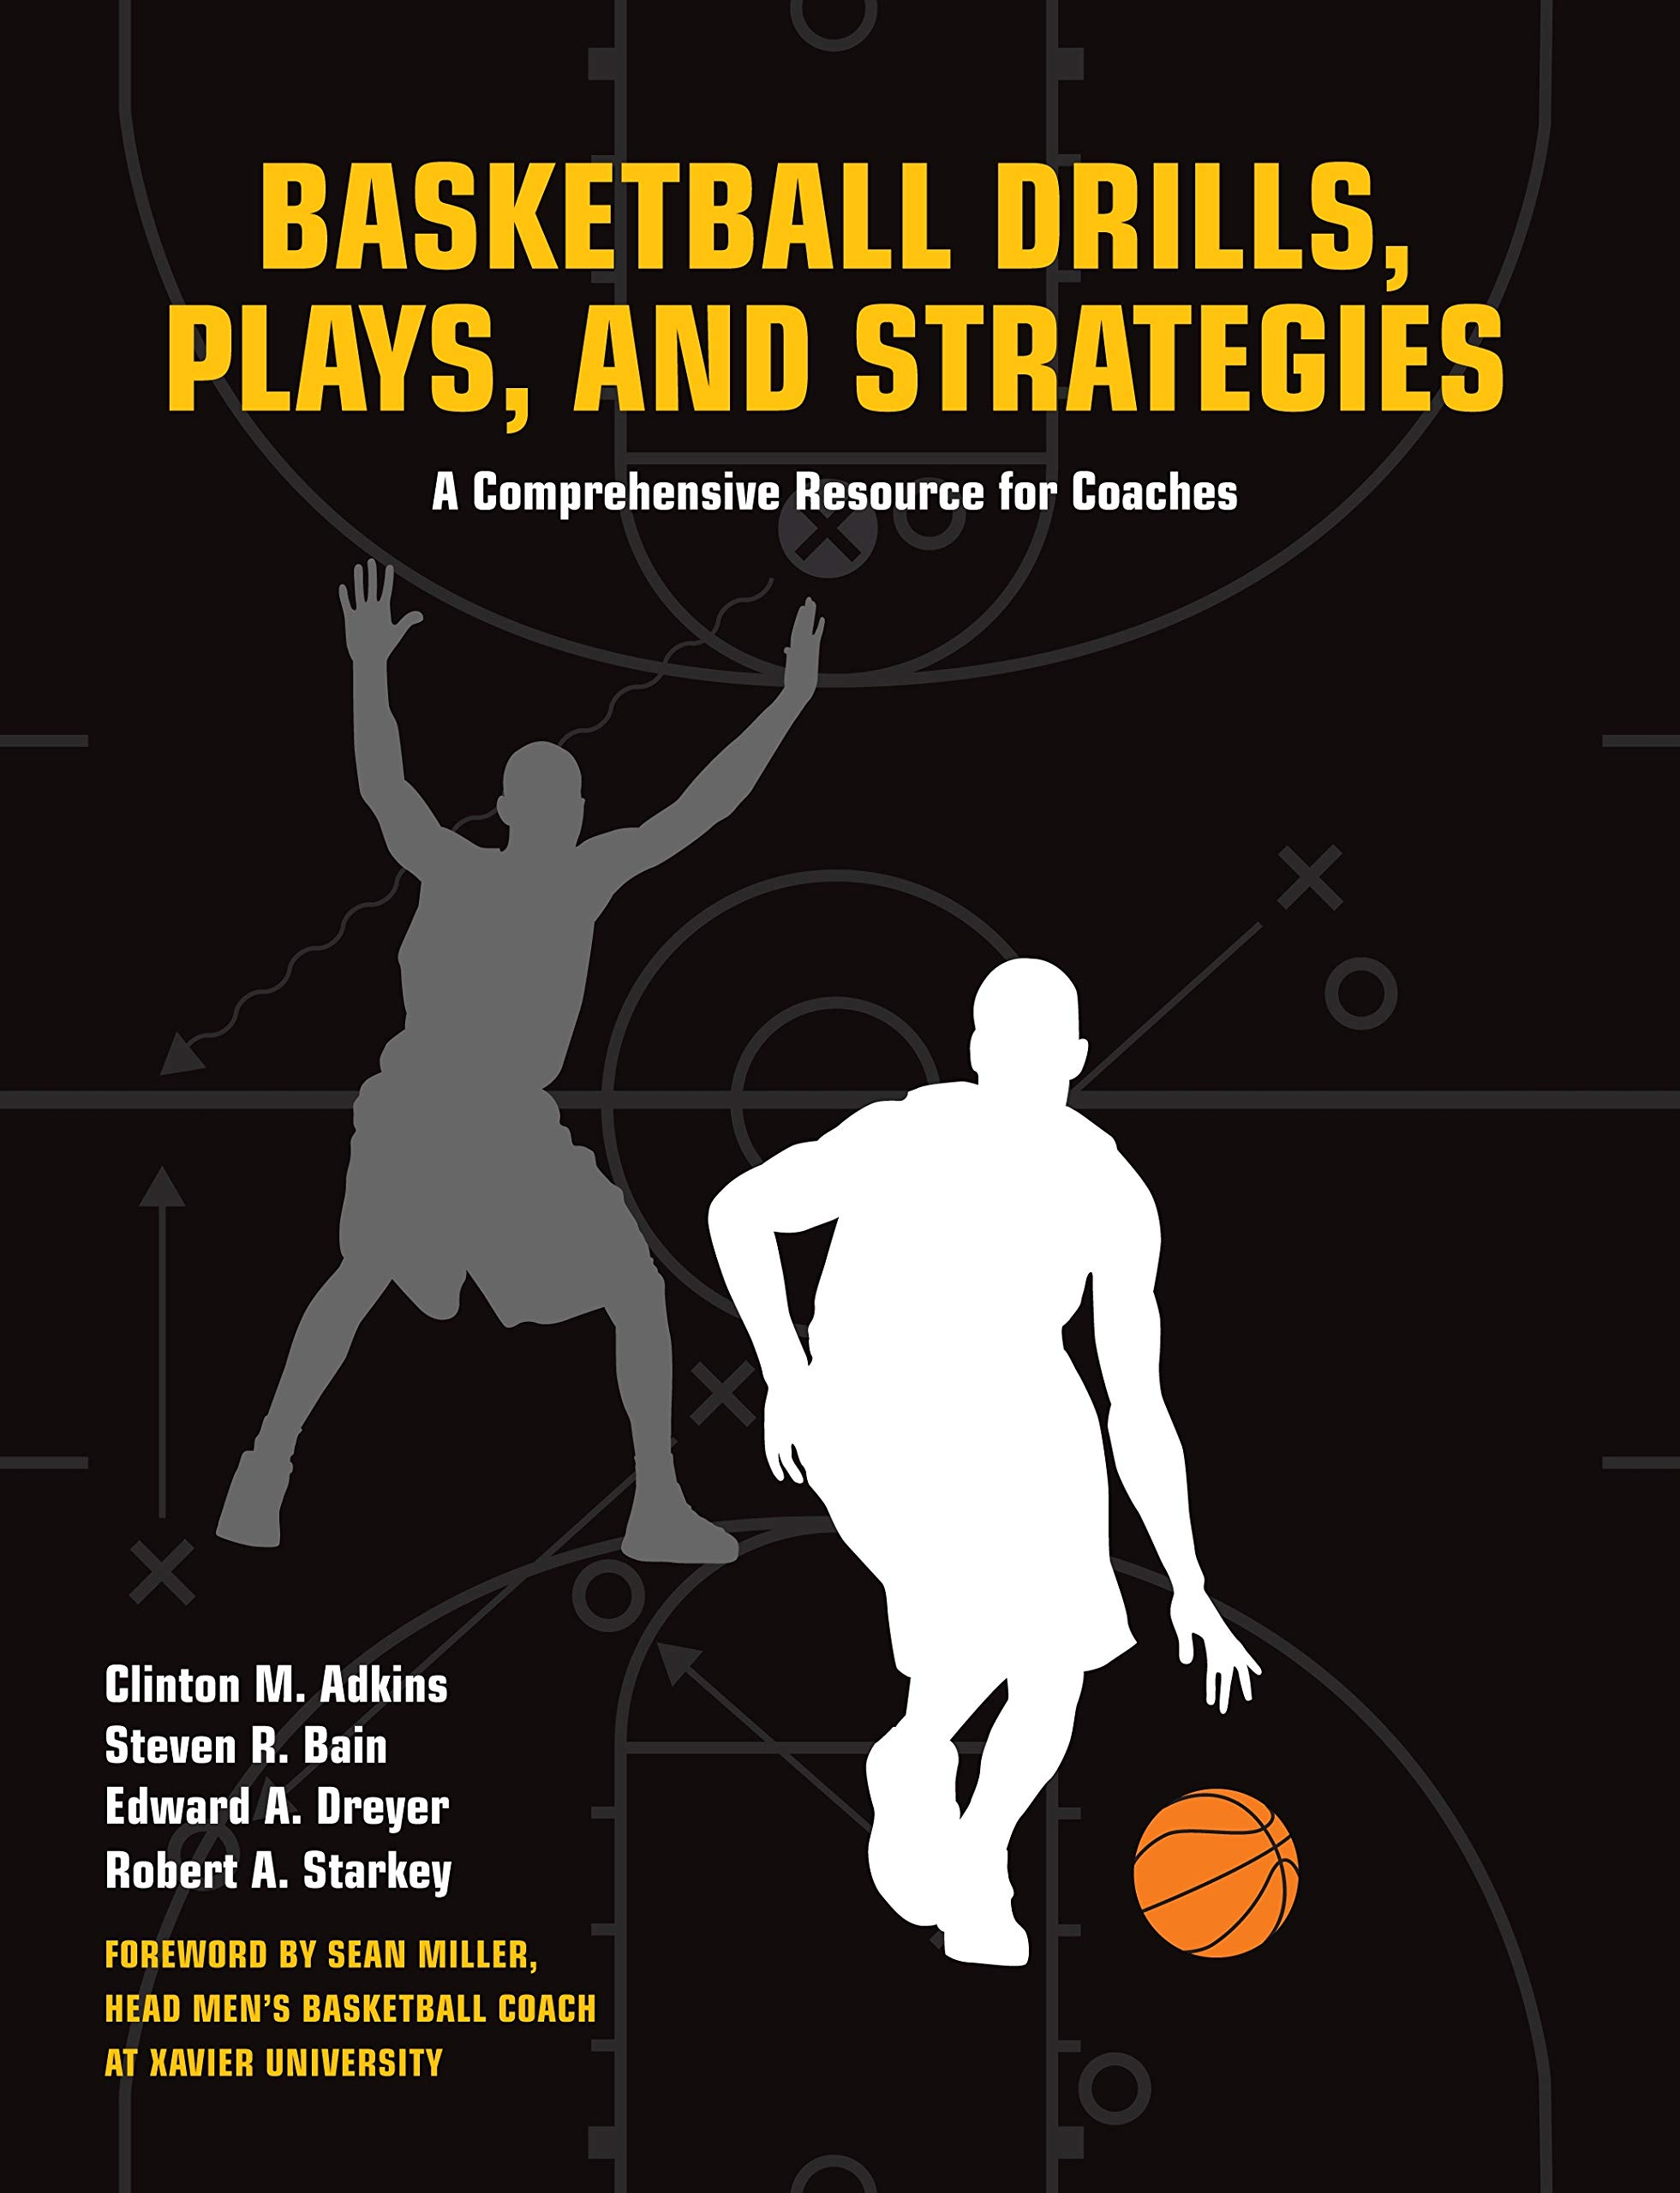 Image OfBasketball Drills, Plays And Strategies: A Comprehensive Resource For Coaches